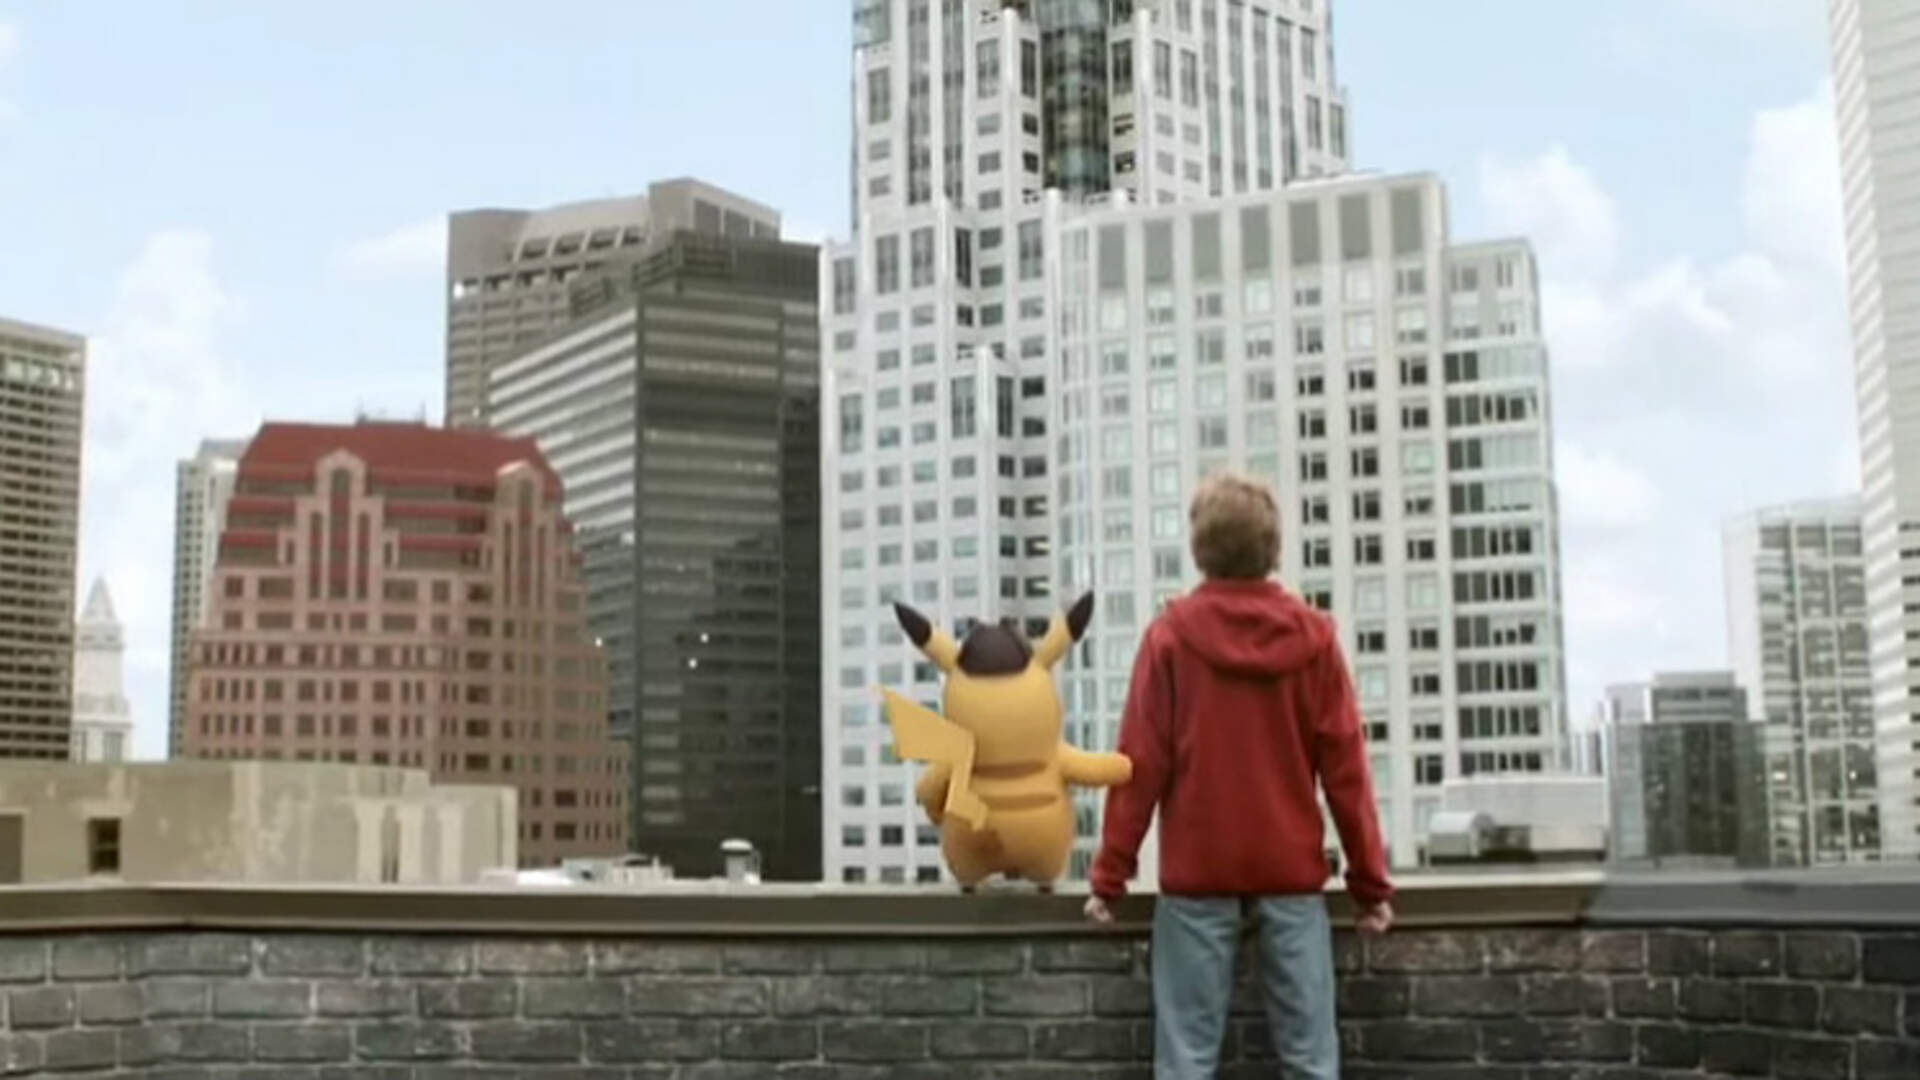 Great Detective Pikachu Will Star in Legendary's Live-Action Pokemon